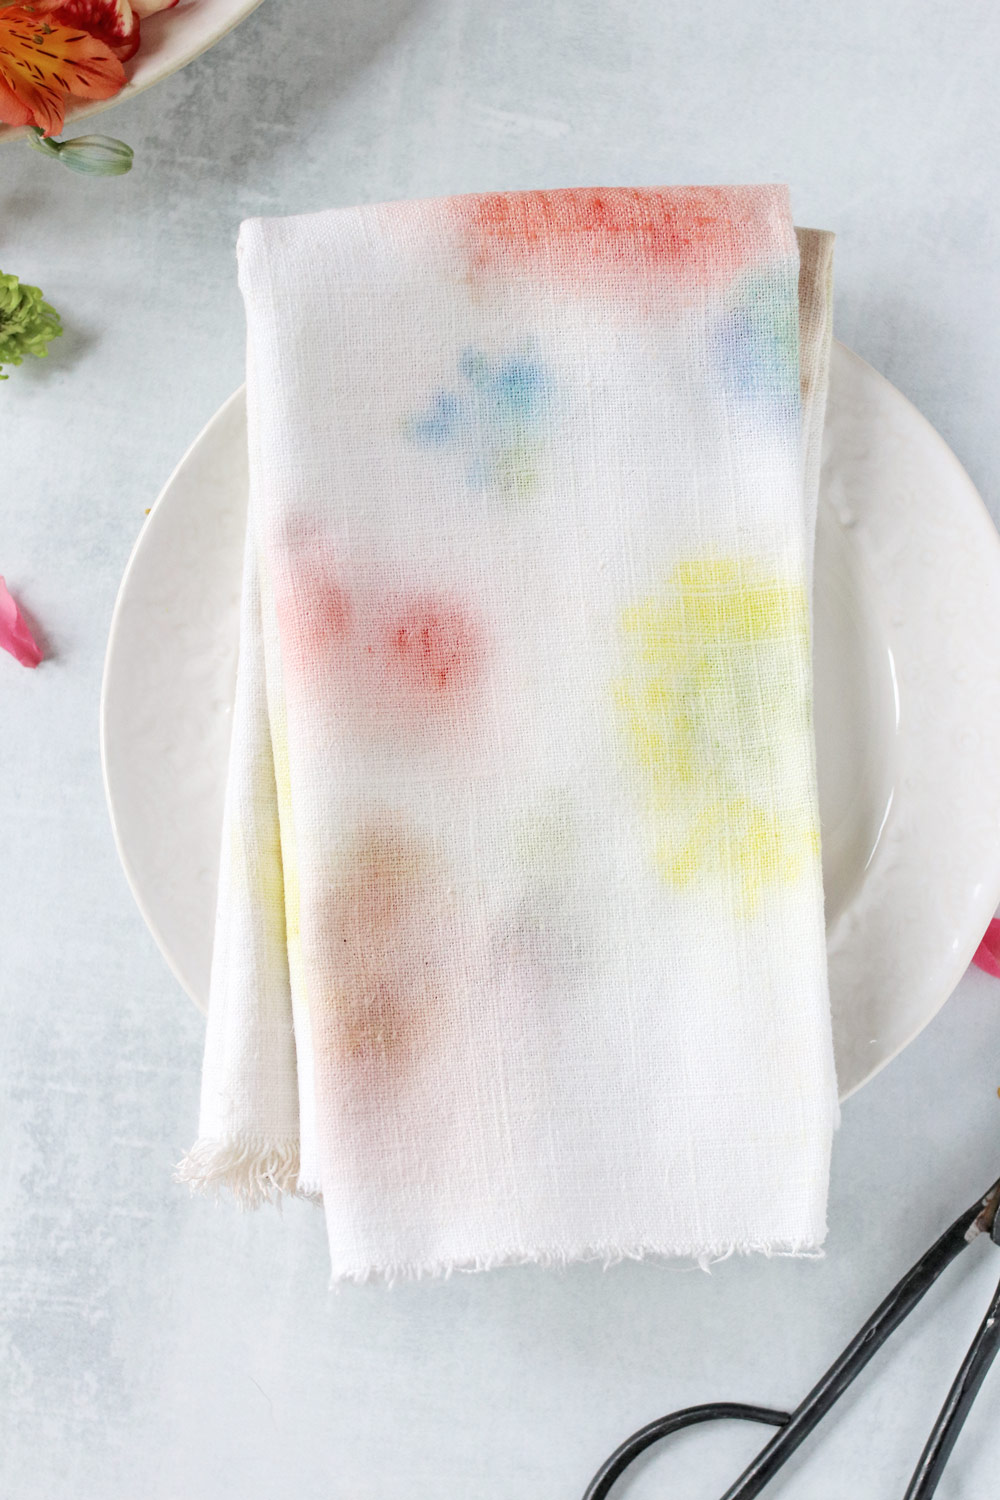 DIY Watercolor Napkins with Flower Dyeing